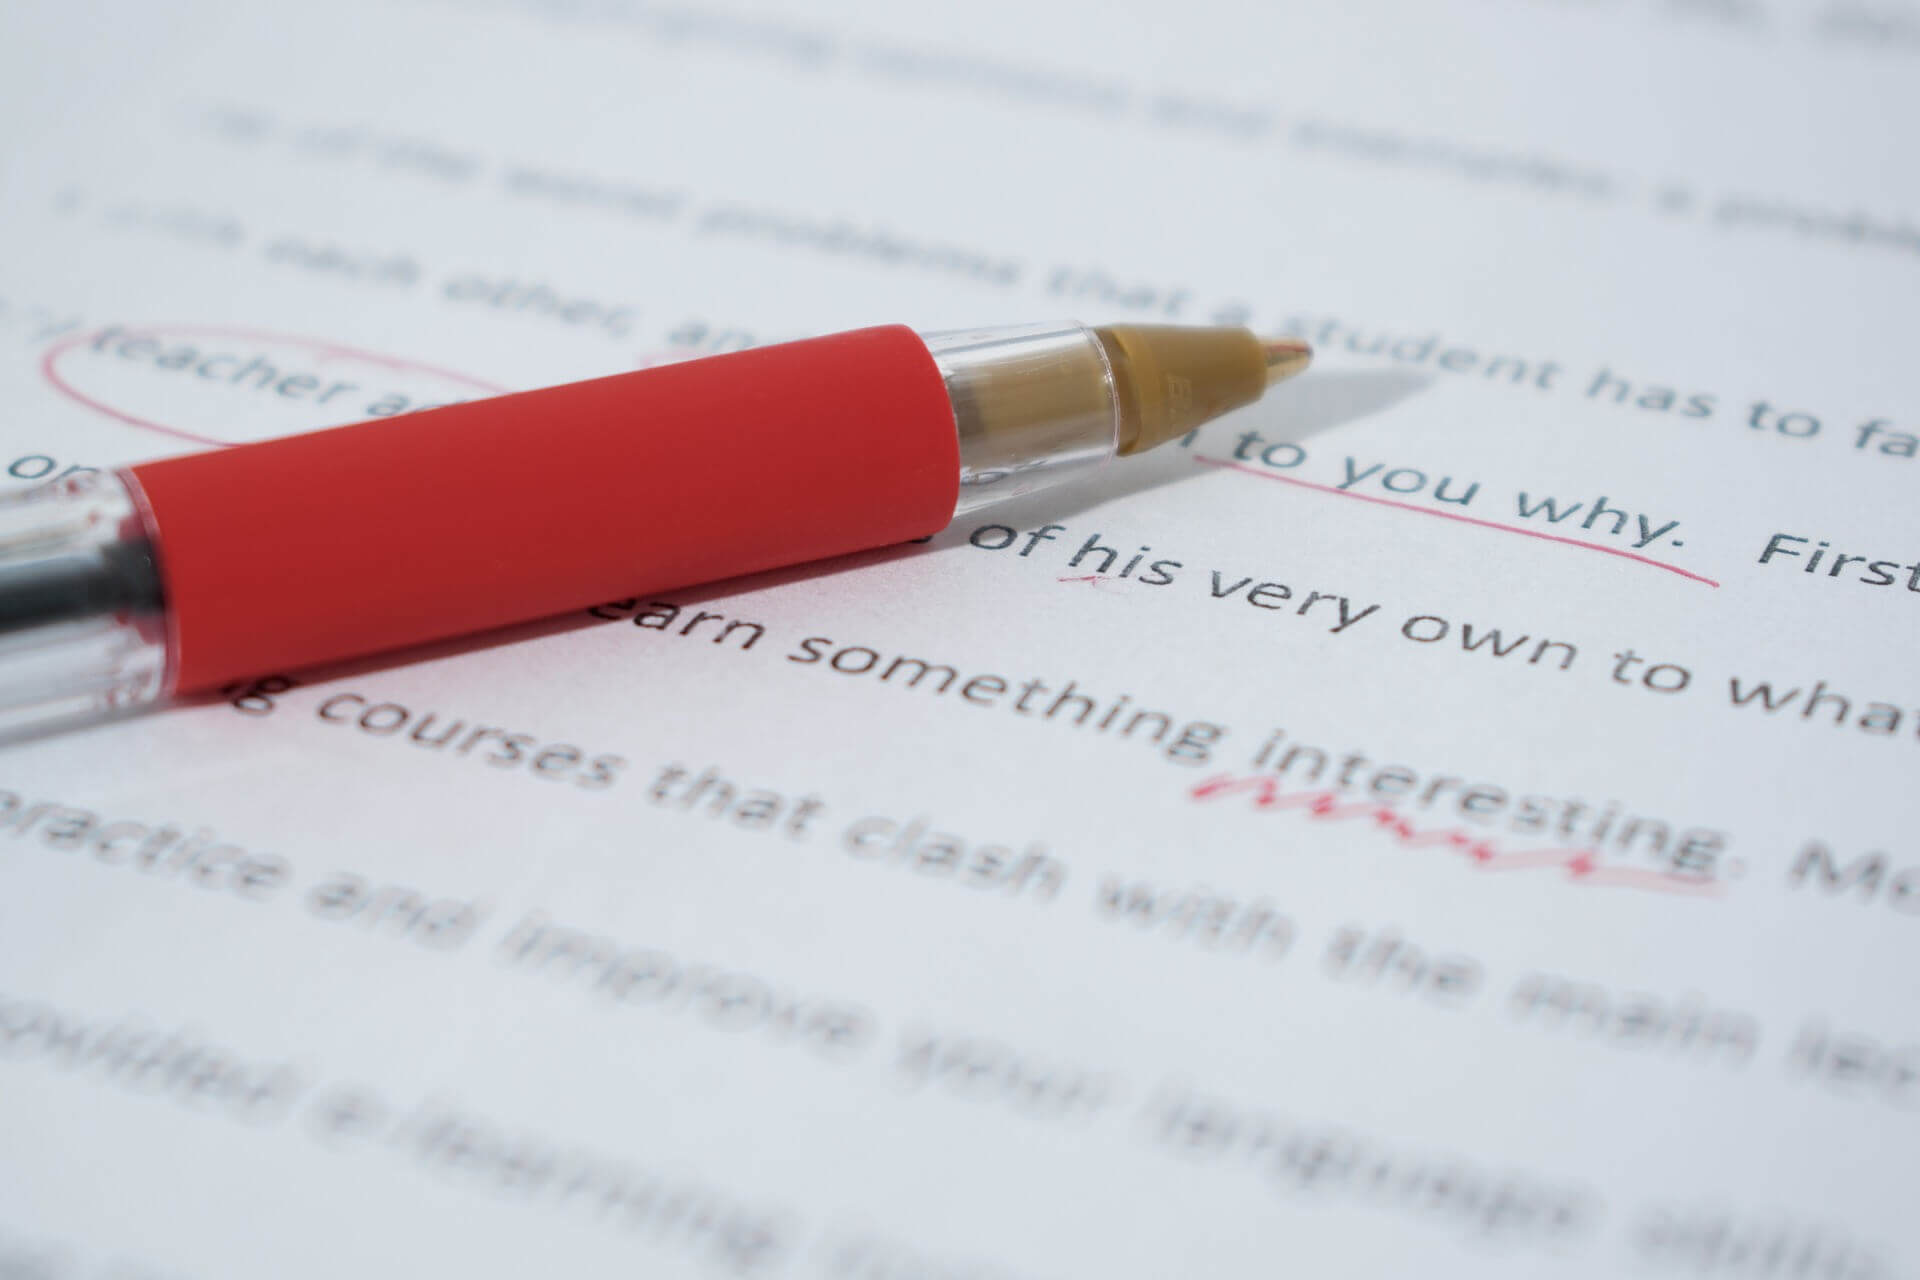 Pen and paper showing corrections being made to a document following proofreading